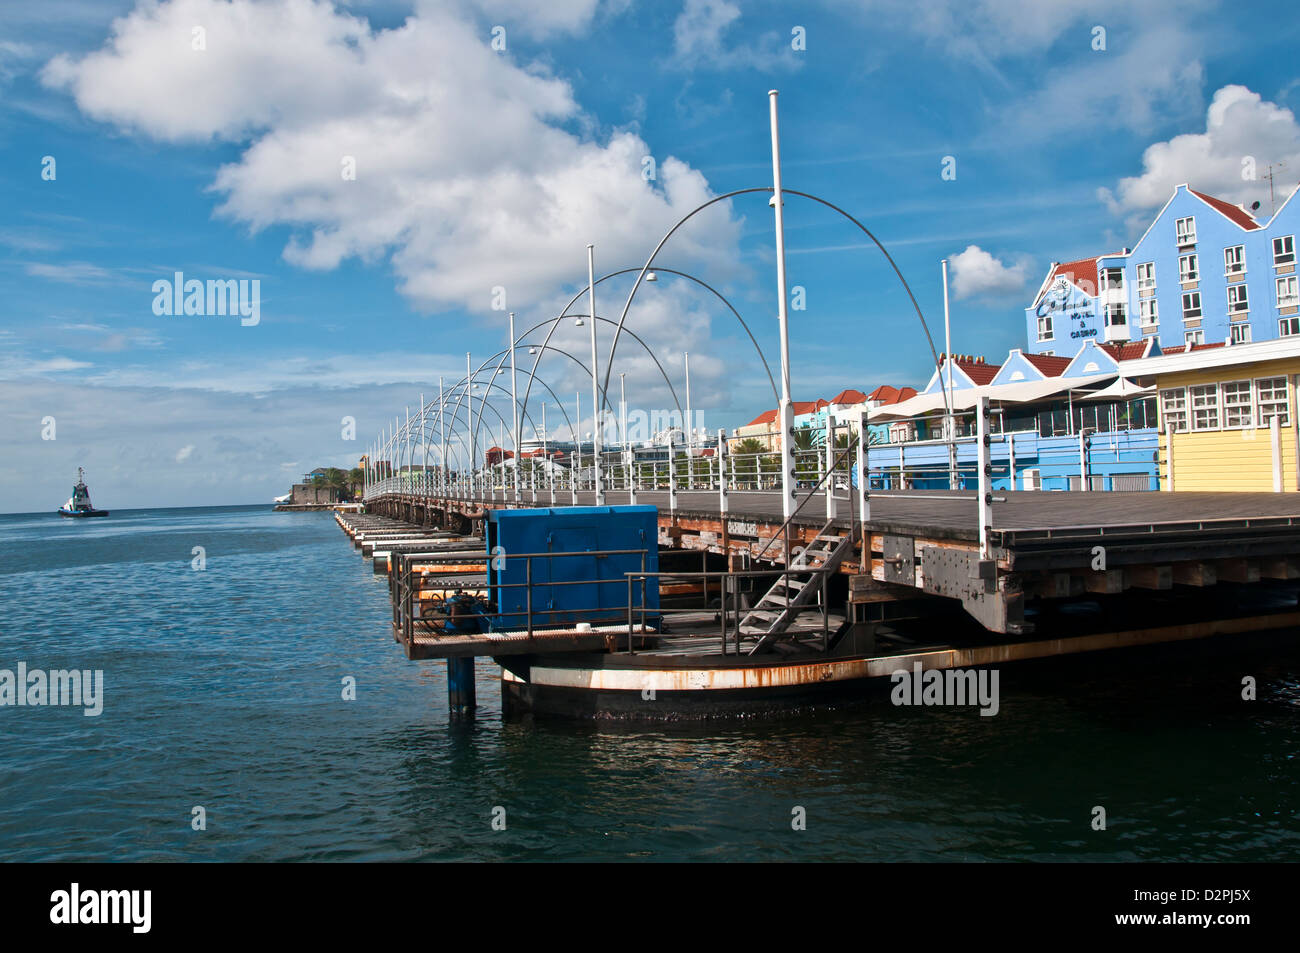 Queen Emma pontoon floating bridge fully retracted for ship traffic at Willemstad, Curacao - Stock Image